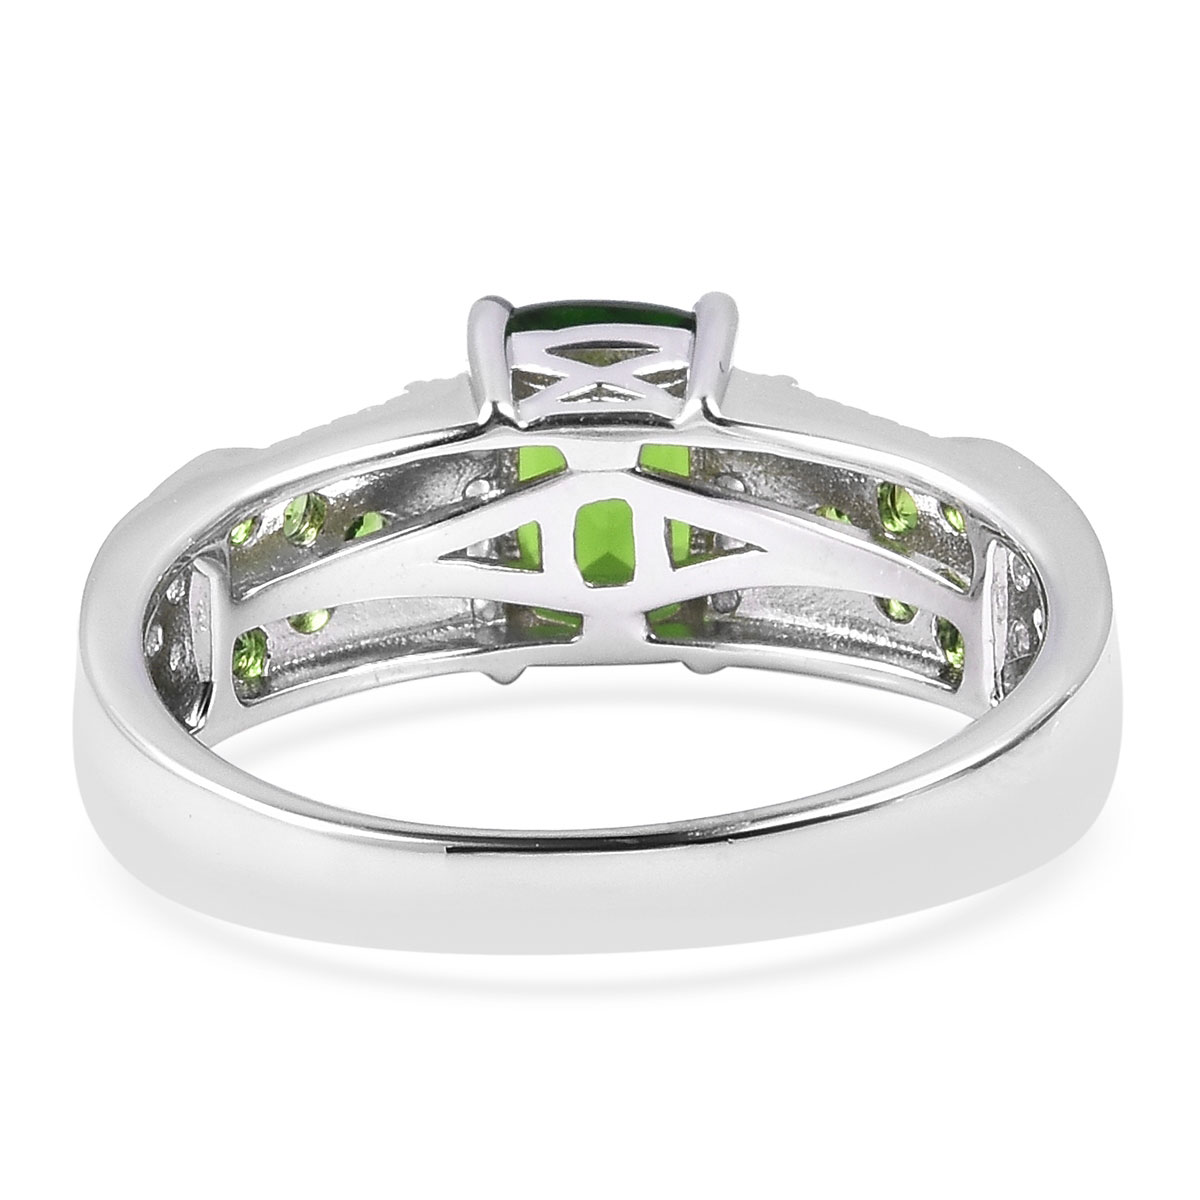 Russian Diopside, White Zircon Ring in Sterling Silver (Size 5.0) 1.80 ctw